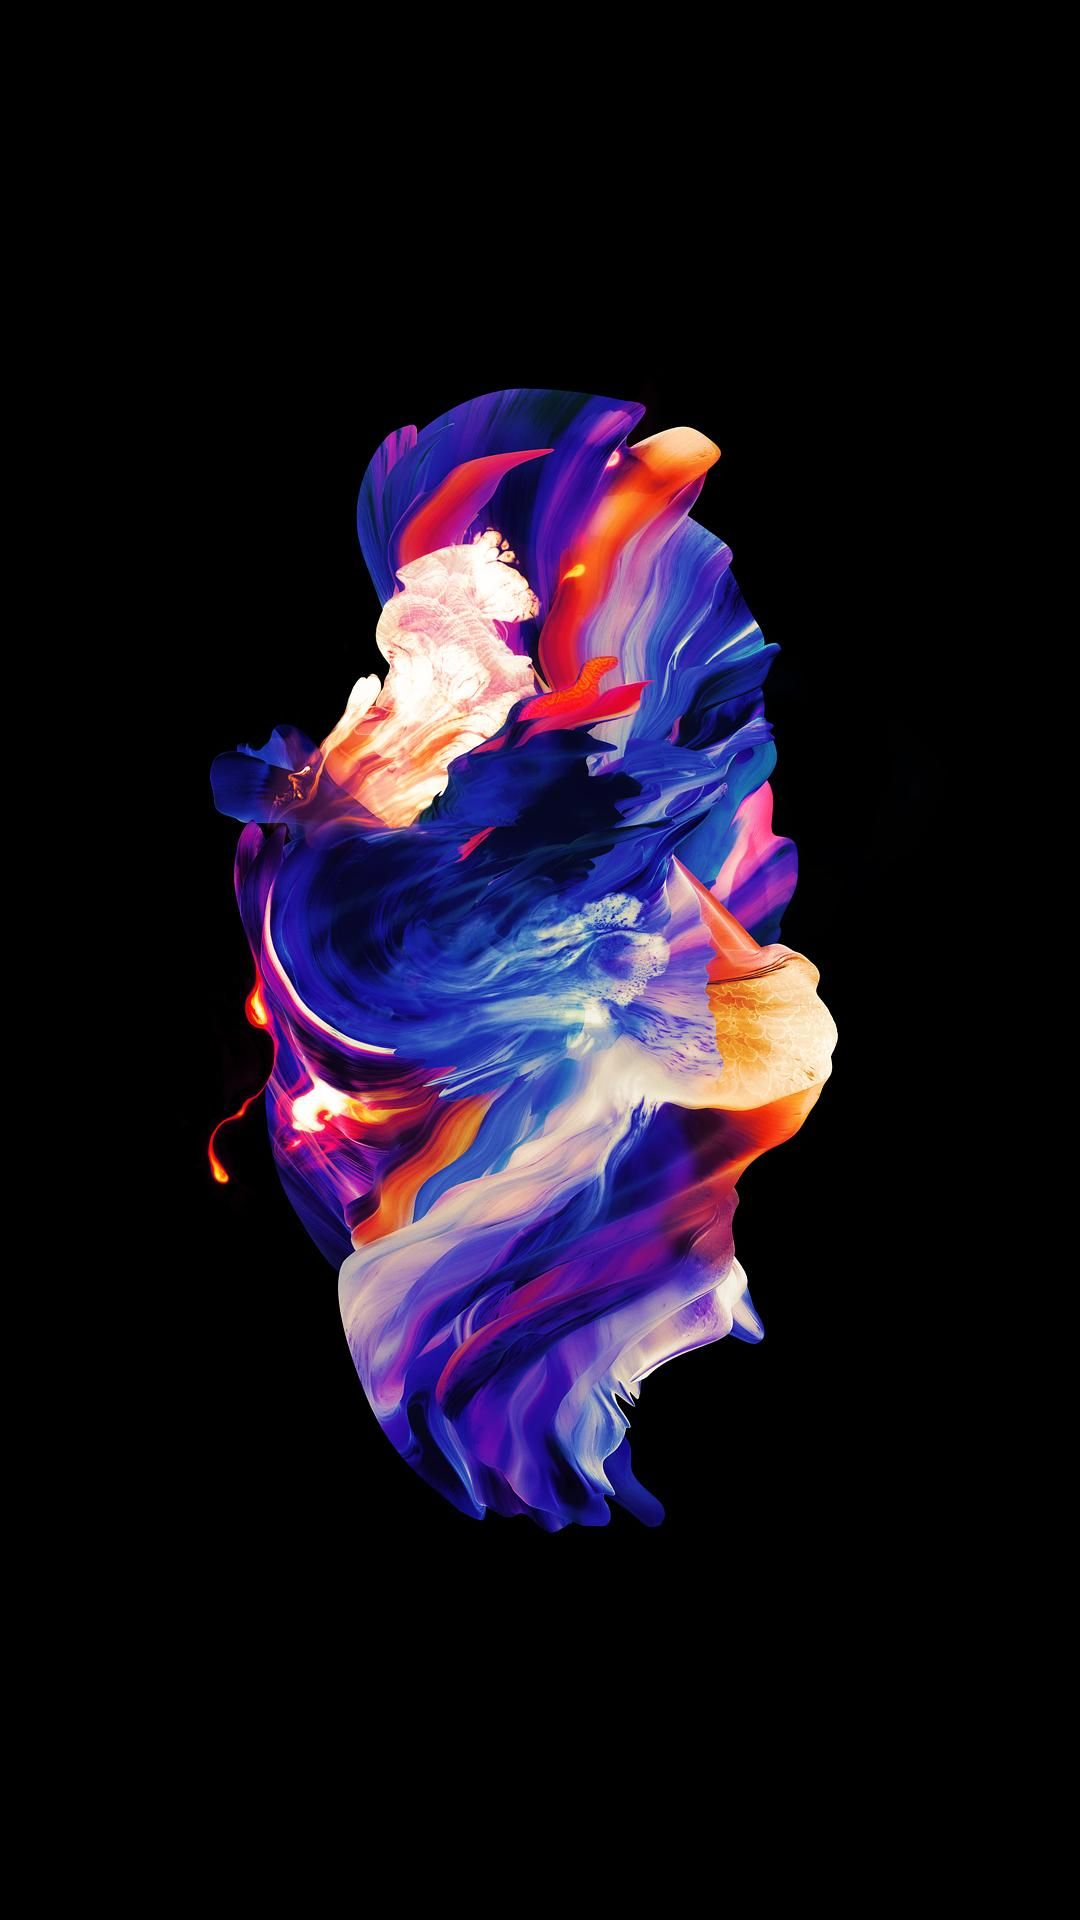 Oneplus 5 1080x1920 Oneplus Wallpapers Minimalist Wallpaper Abstract Iphone Wallpaper